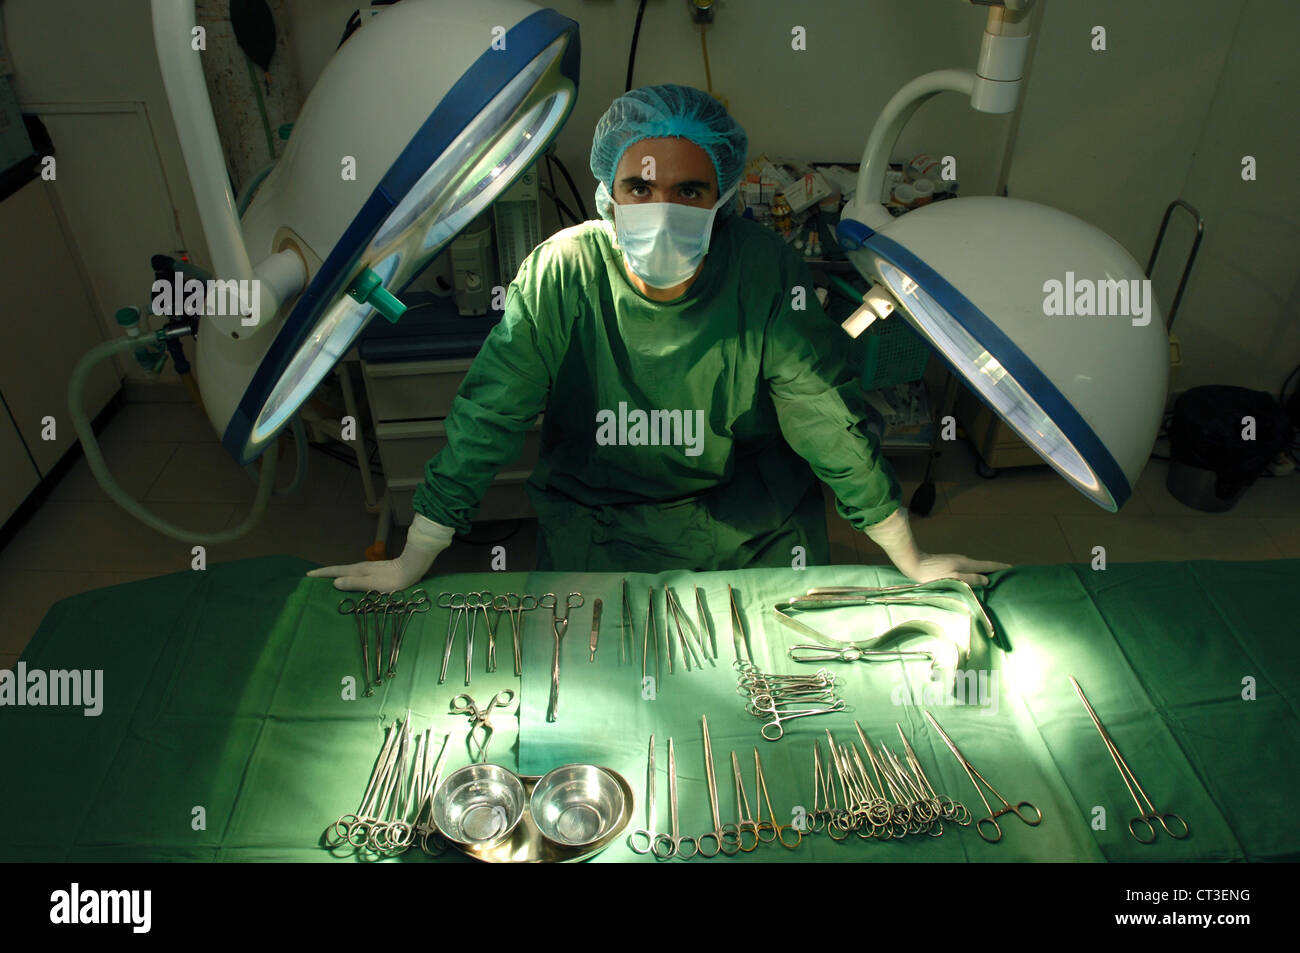 A masked surgeon leaning on a table of sterile surgical tools in a hospital theatre. - Stock Image